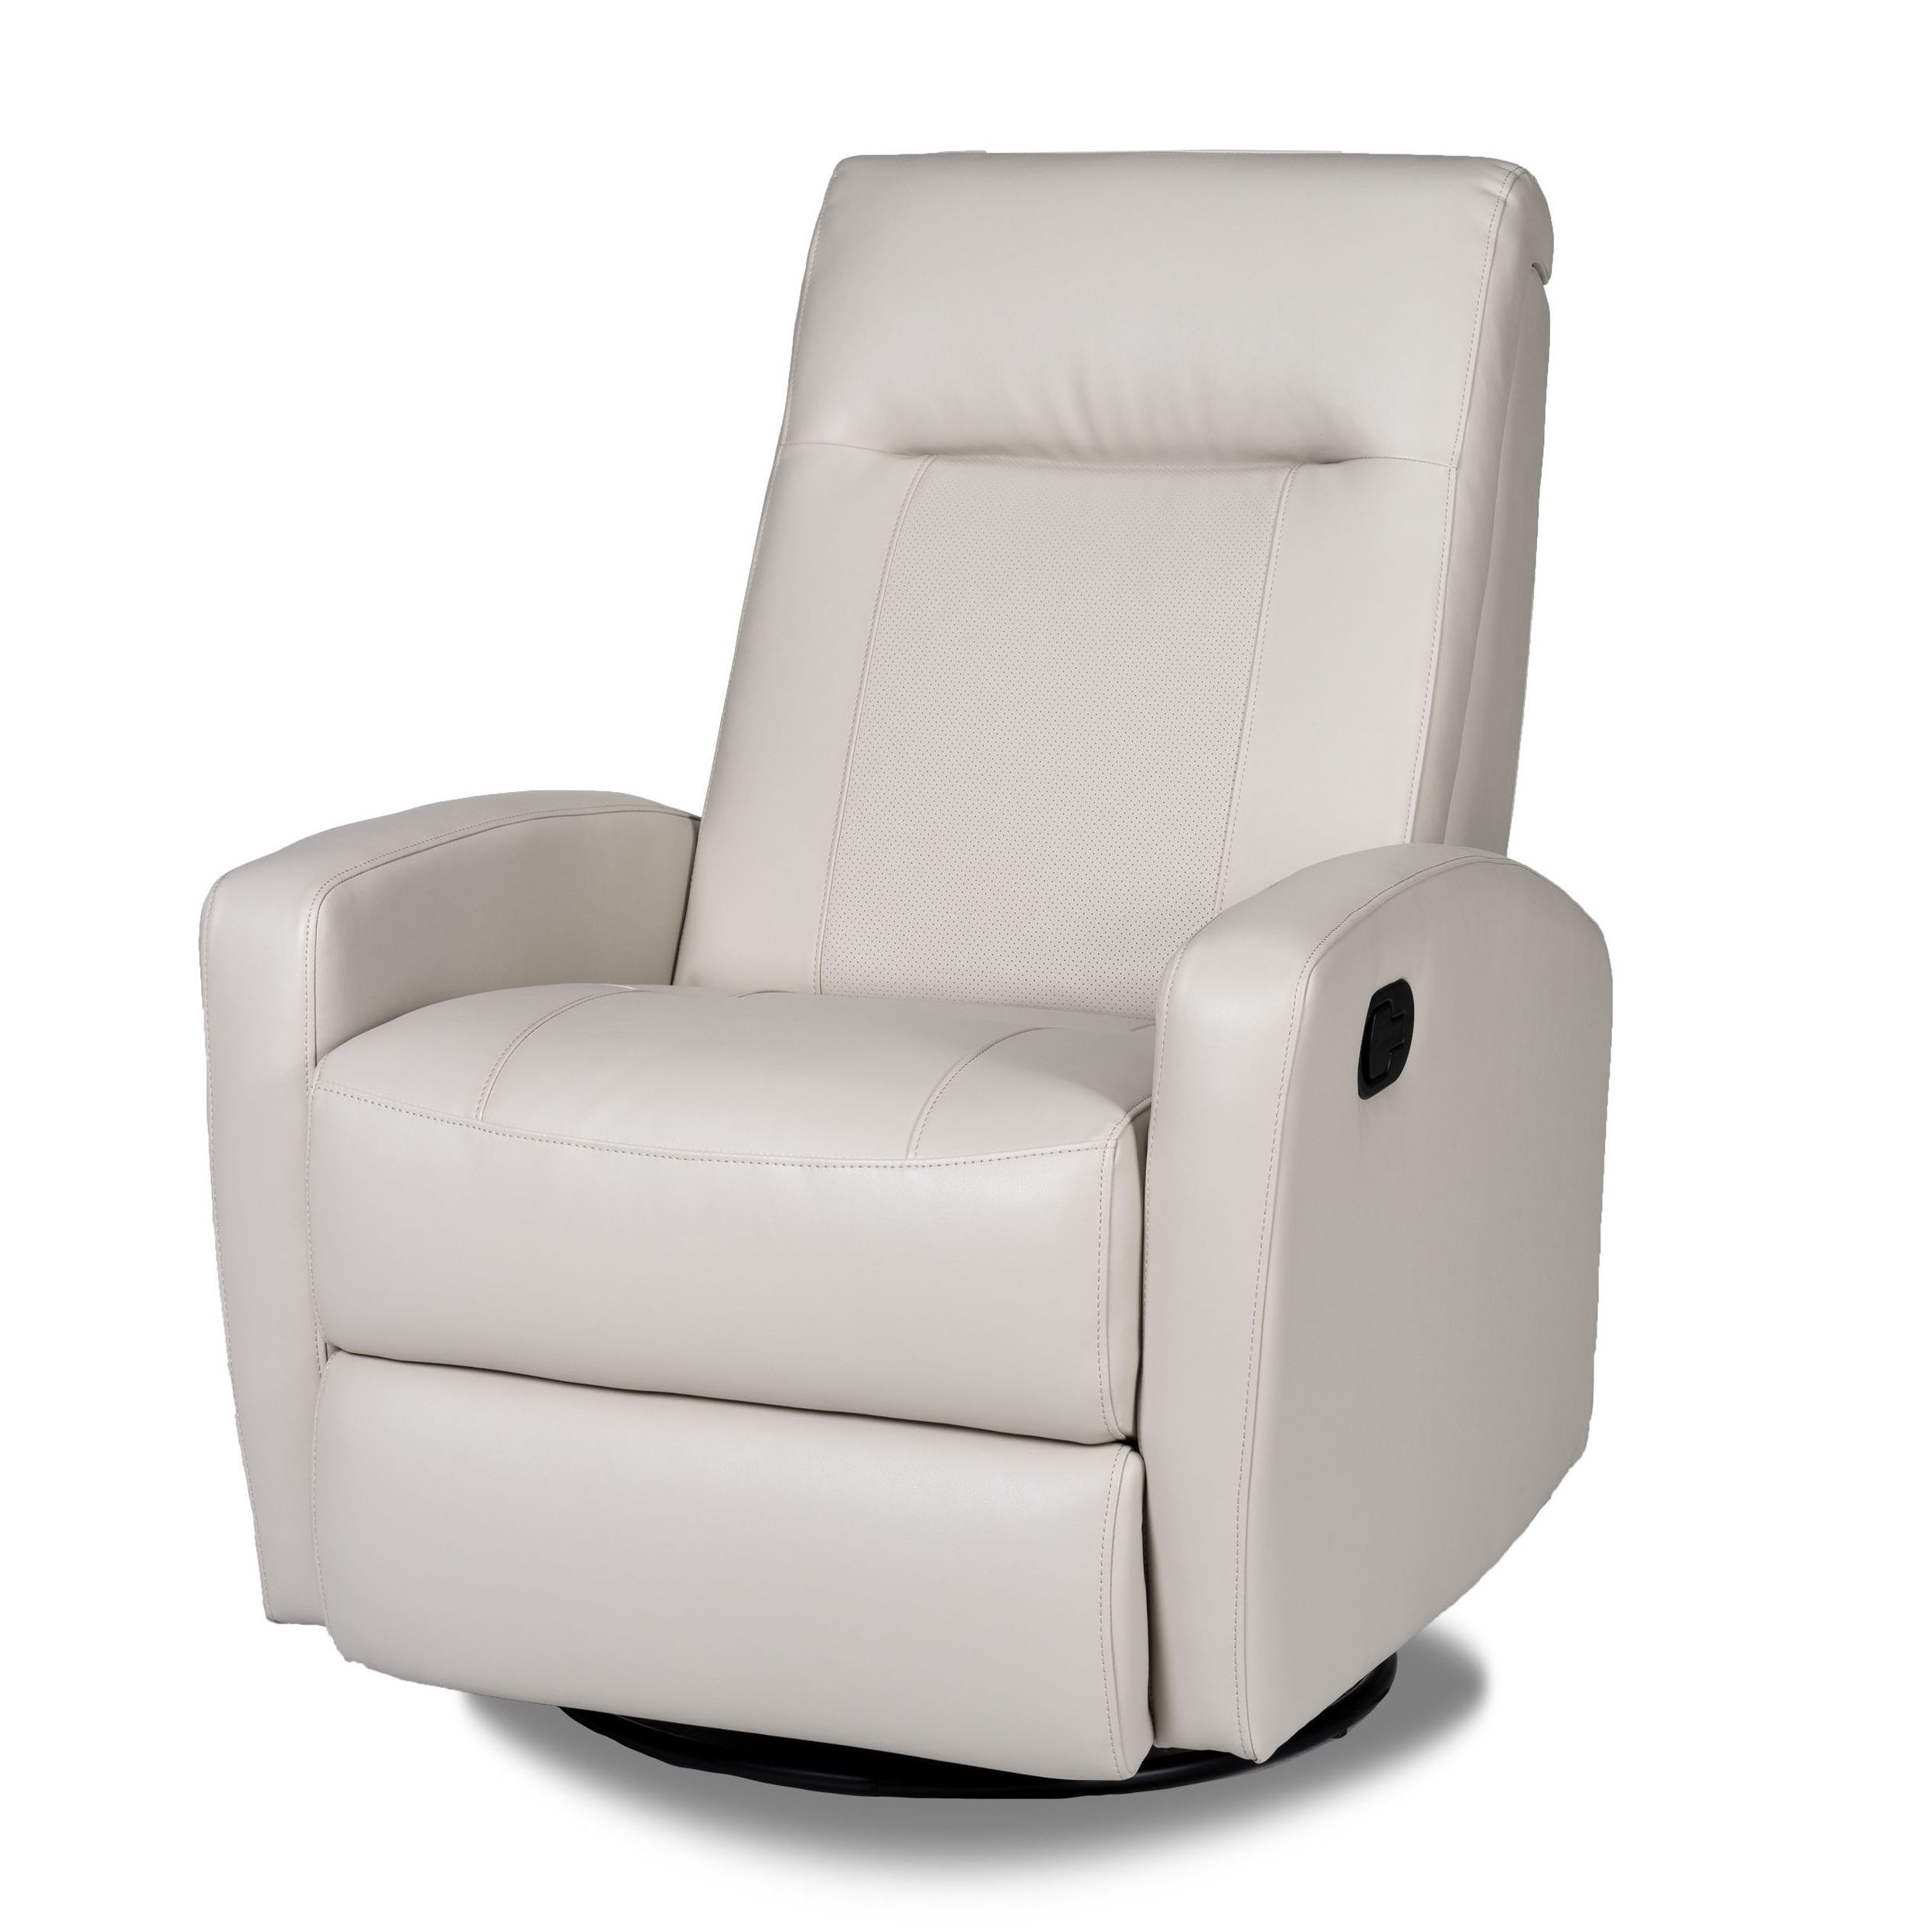 Dale Iii Polyurethane Swivel Glider Recliners Inside Trendy Stefan Bonded Leather Swivel Glider Recliner – Overstock™ Shopping (View 6 of 20)